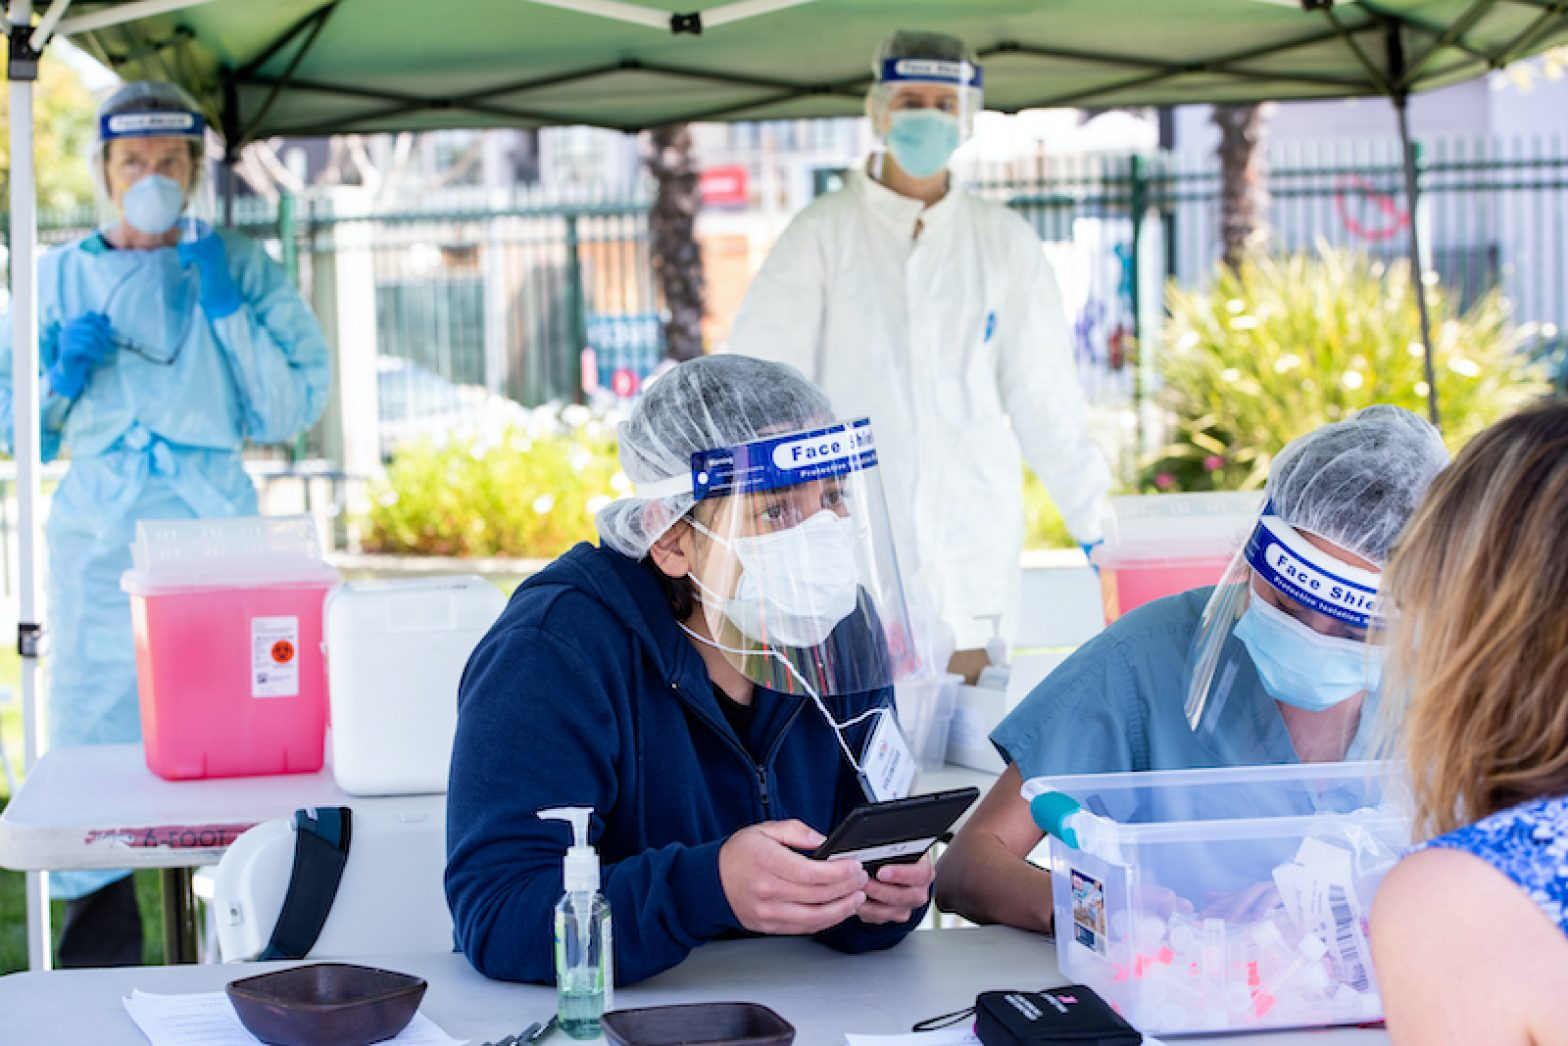 Coronavirus testing in the Mission District on April 27, 2020. Barbara Ries / UCSF